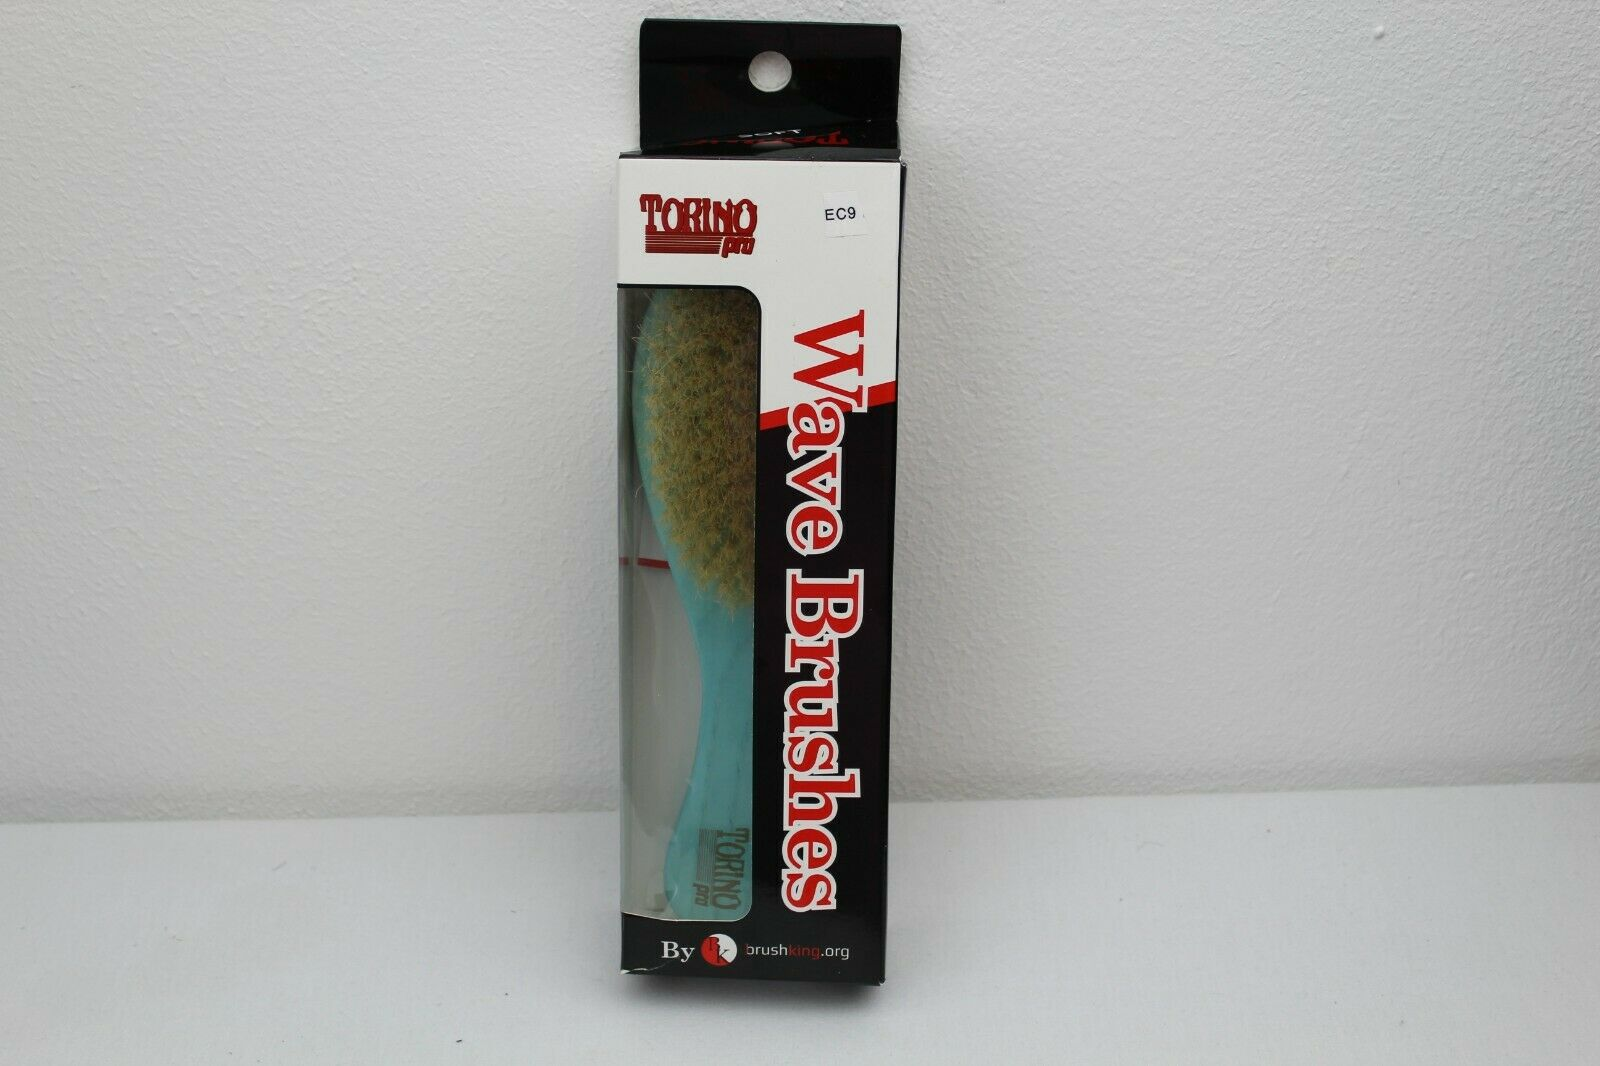 Torino Pro Soft Curved Wave Brush By King 1950-360 Softy Ext